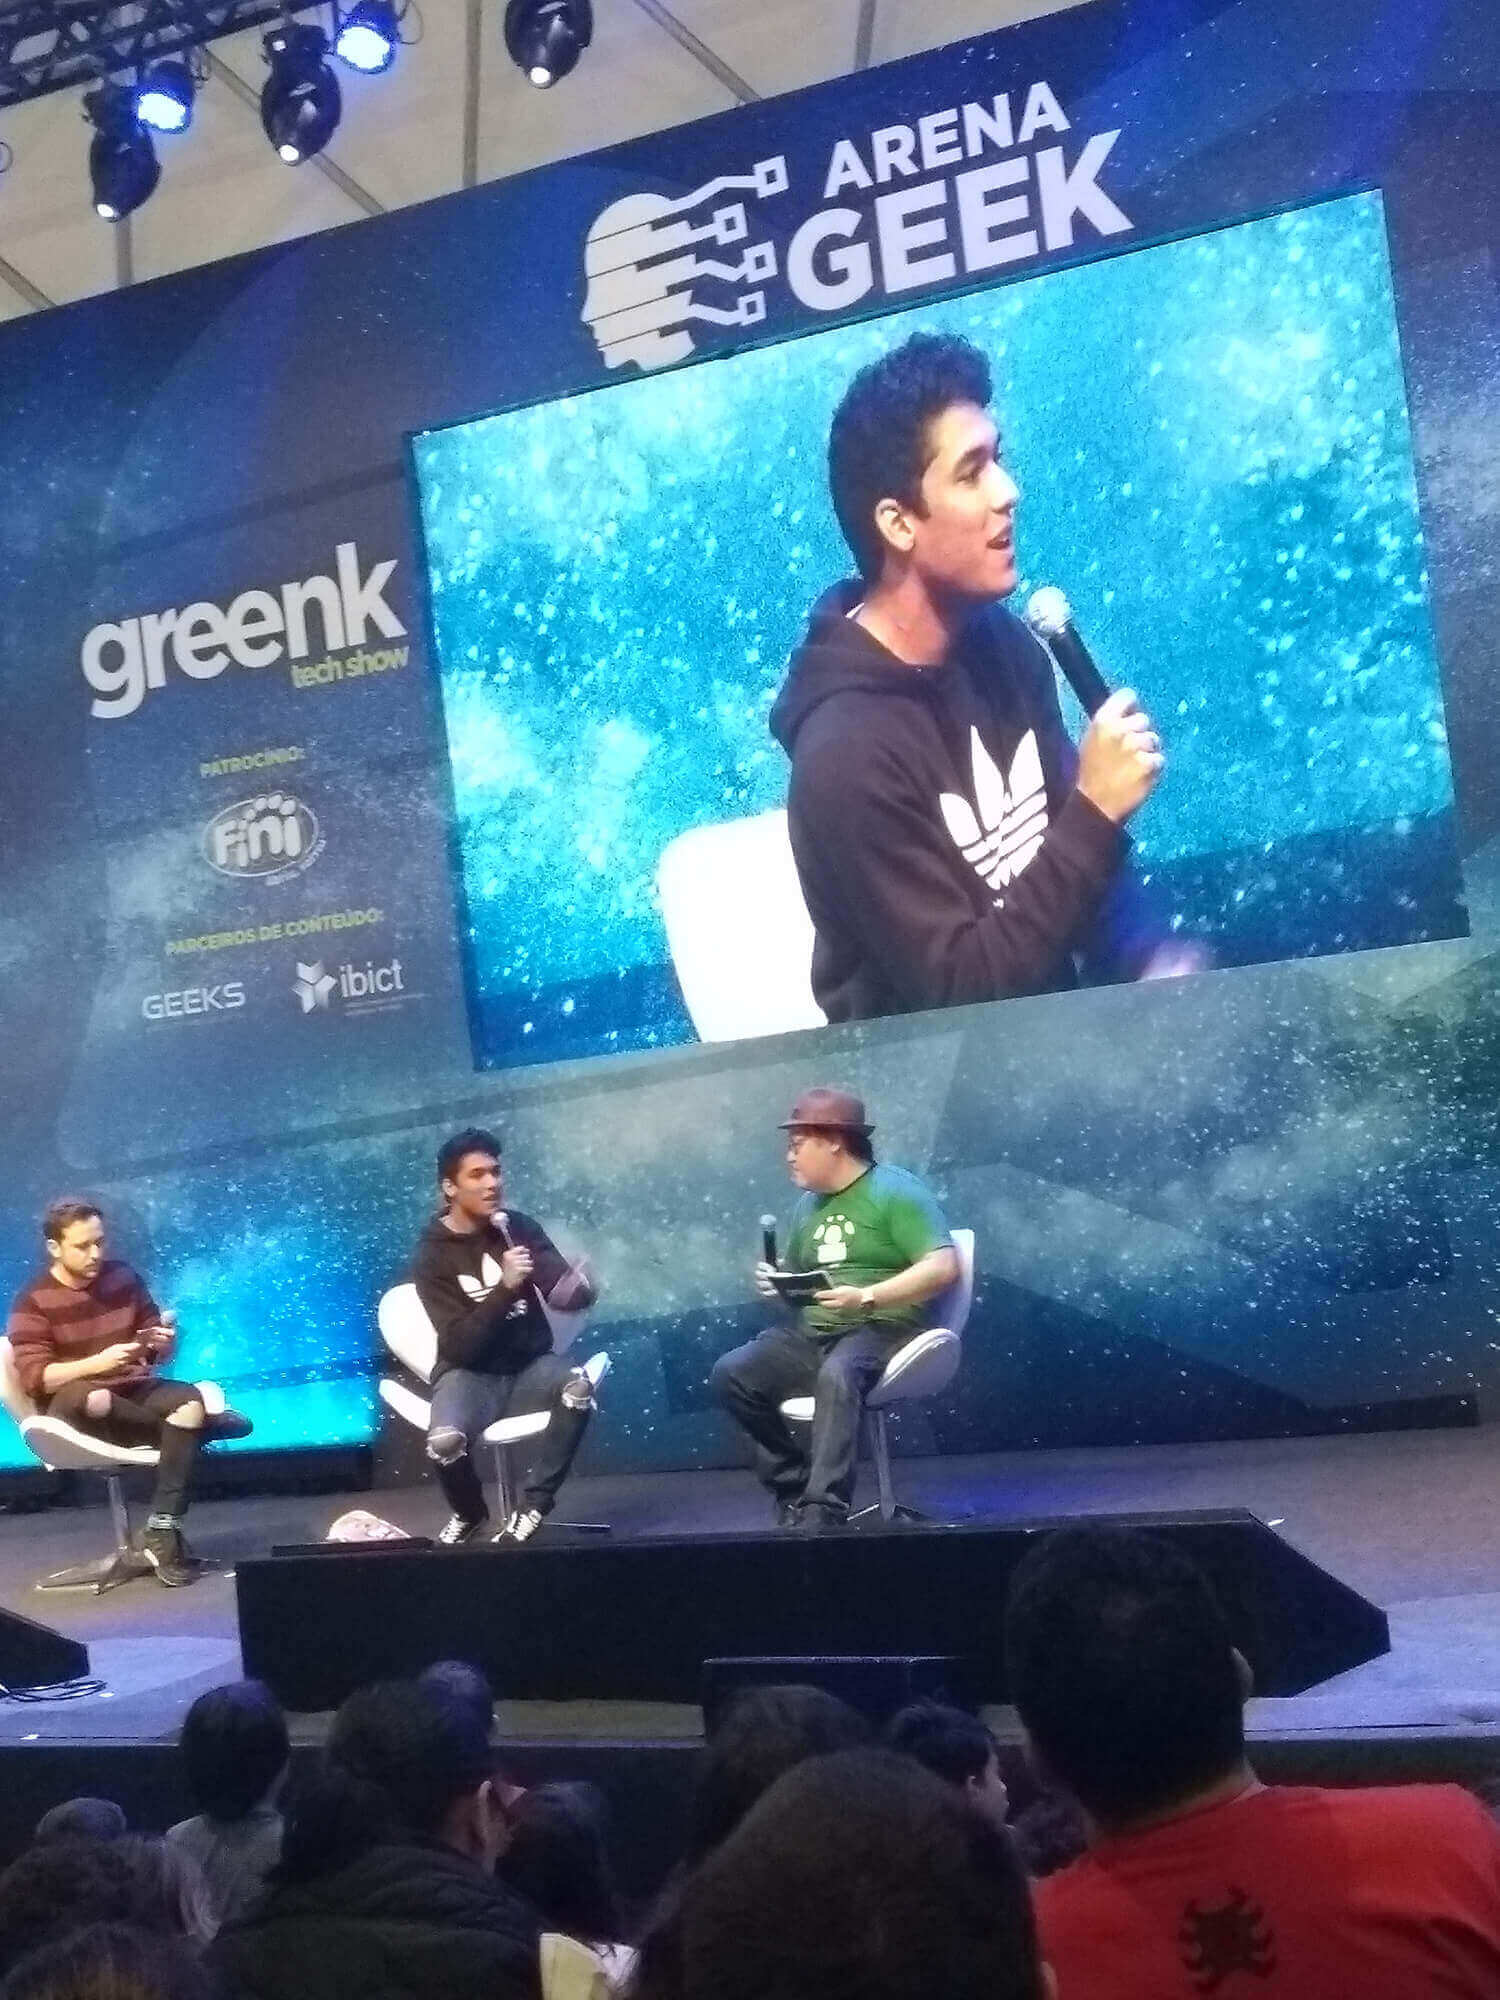 Authentic Games na Arena Geek - Greenk 2018